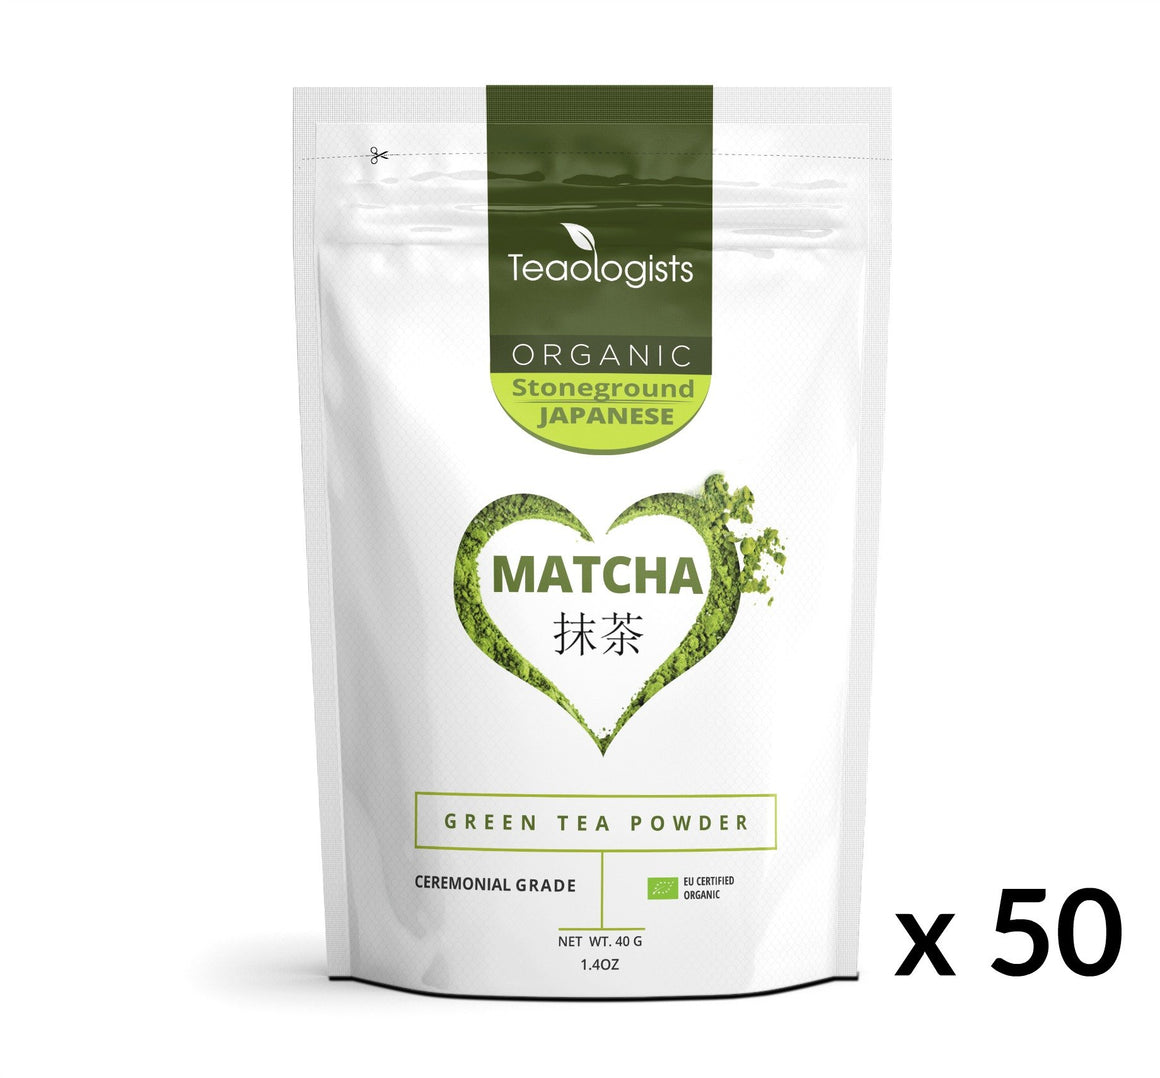 Matcha Green Tea - Organic Japanese Ceremonial Grade BULK BUY 2000g (50 x 40g)